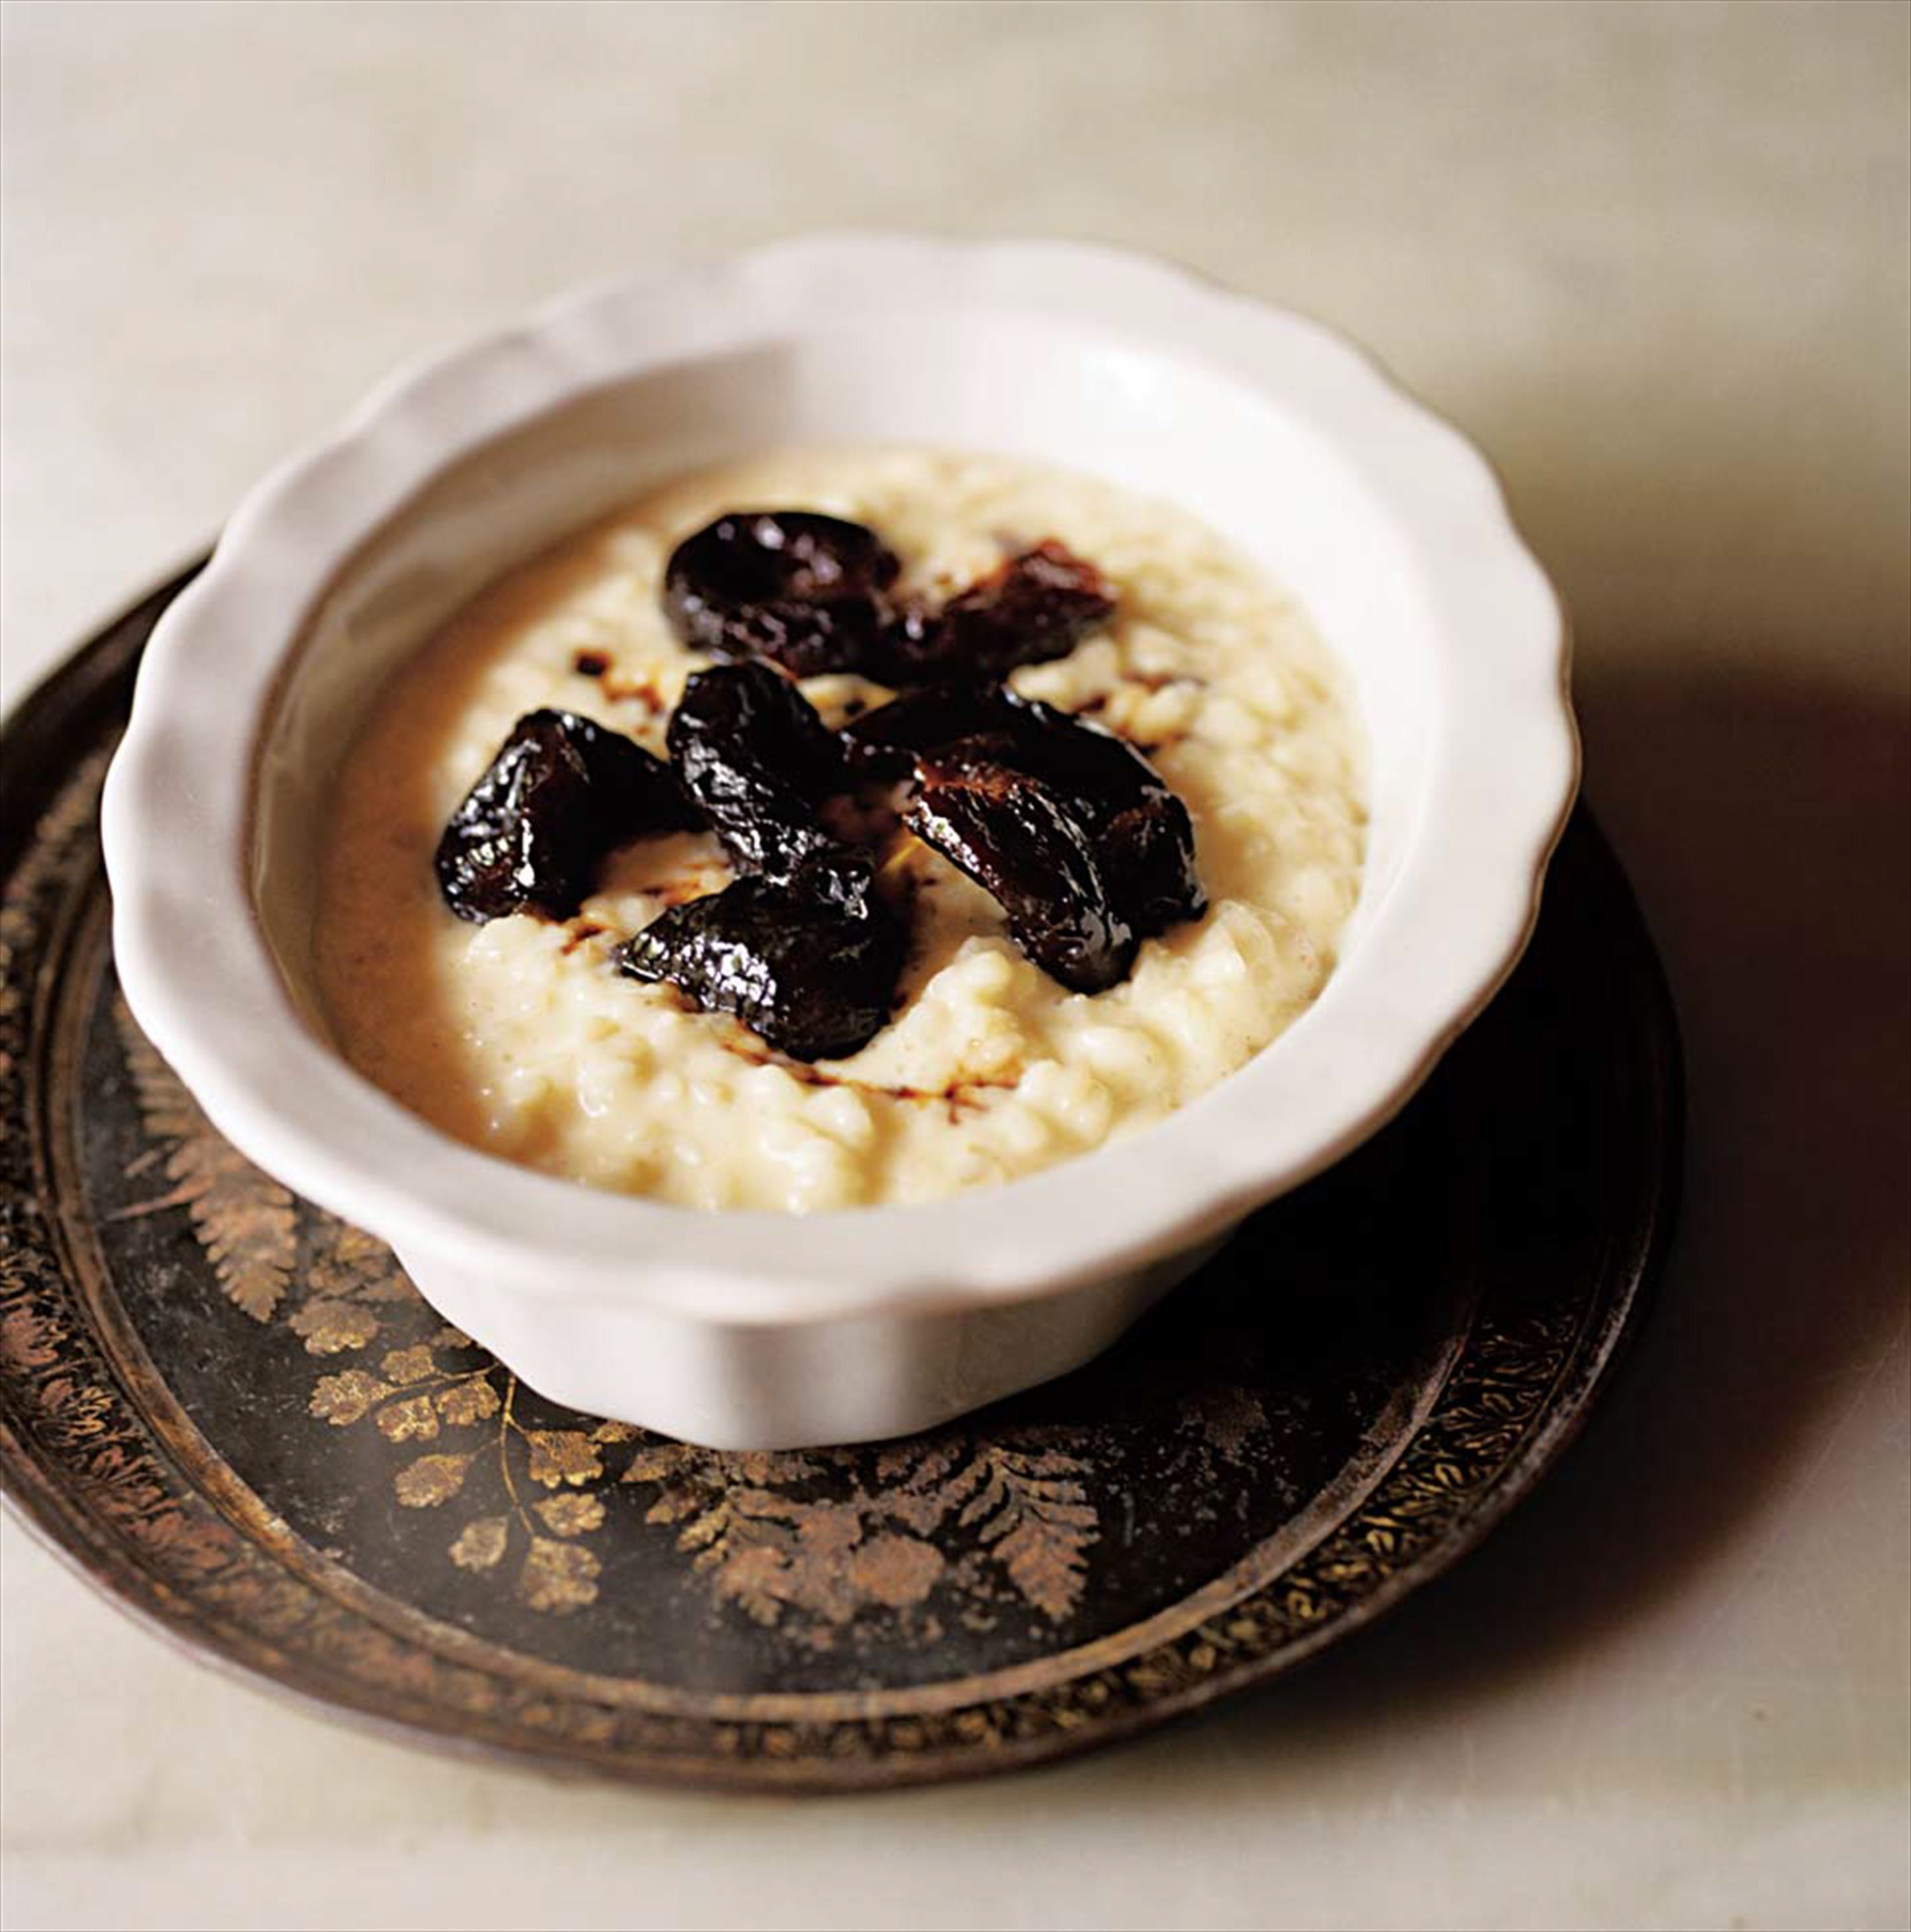 Rice pudding with poached prunes